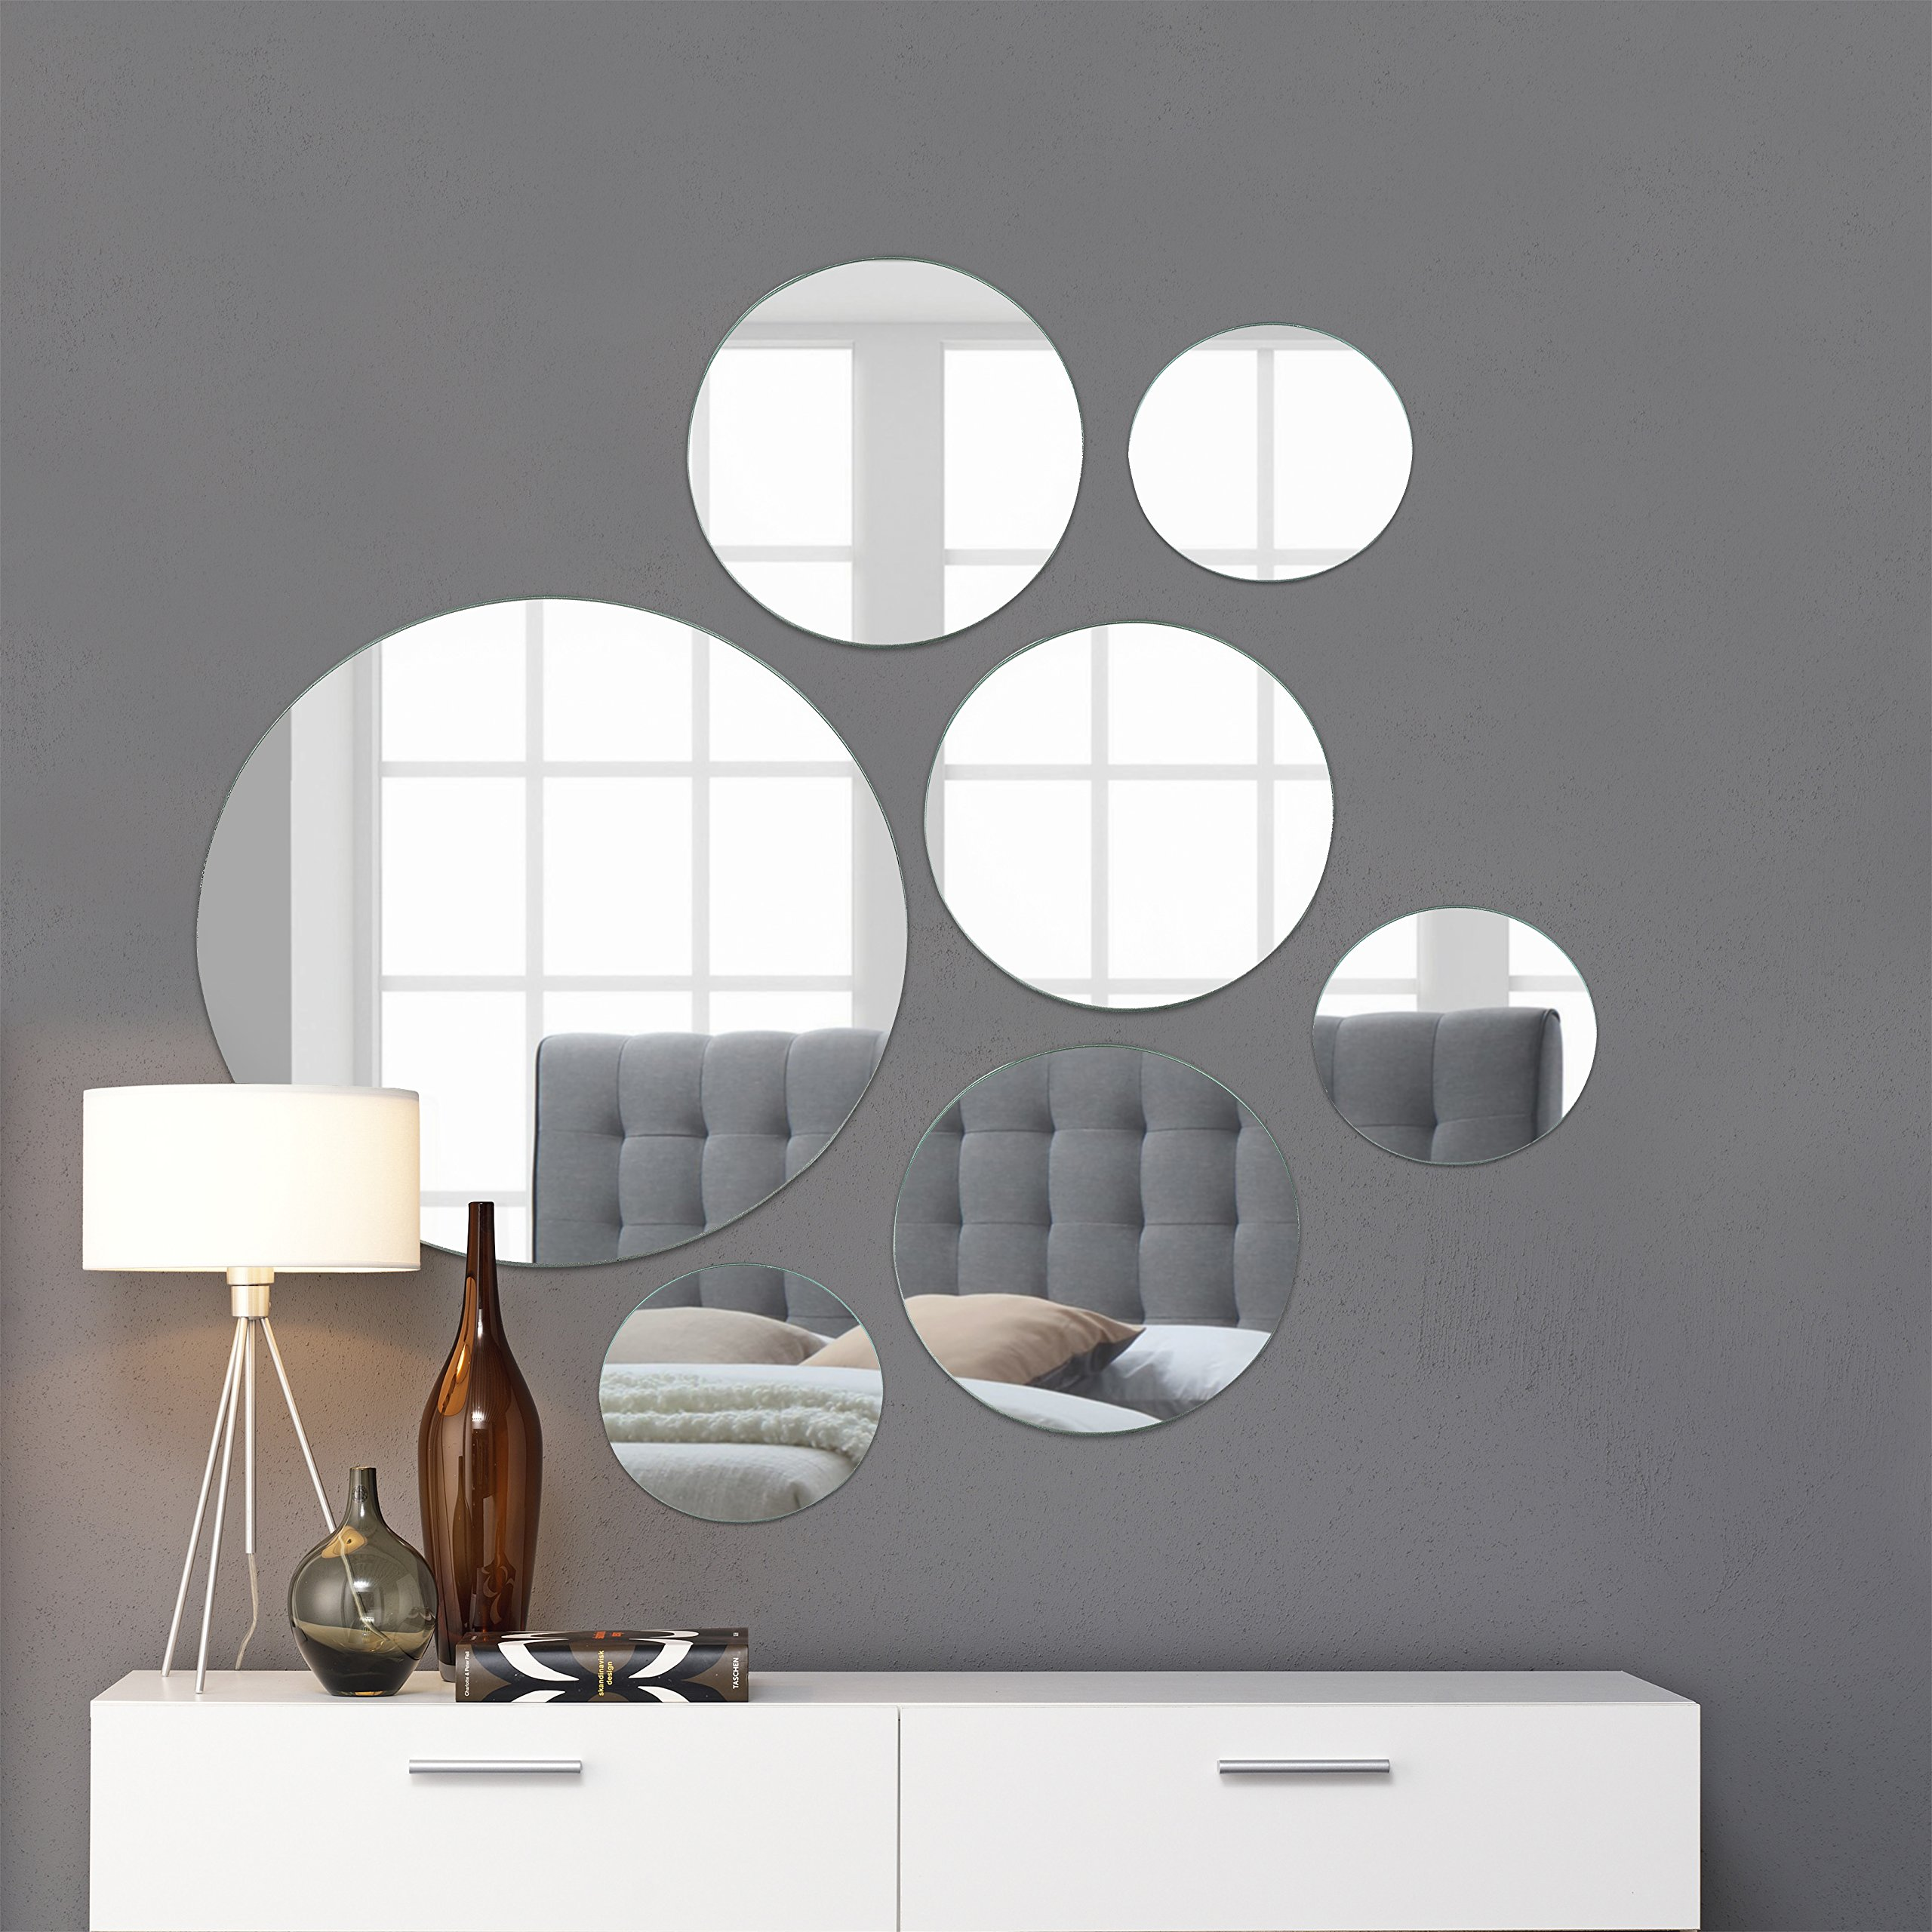 Light In the Dark Round Wall Mirror Mounted Assorted Sizes,1 large 10'', 3 Medium 7'', 3 Small 4'',Set of 7